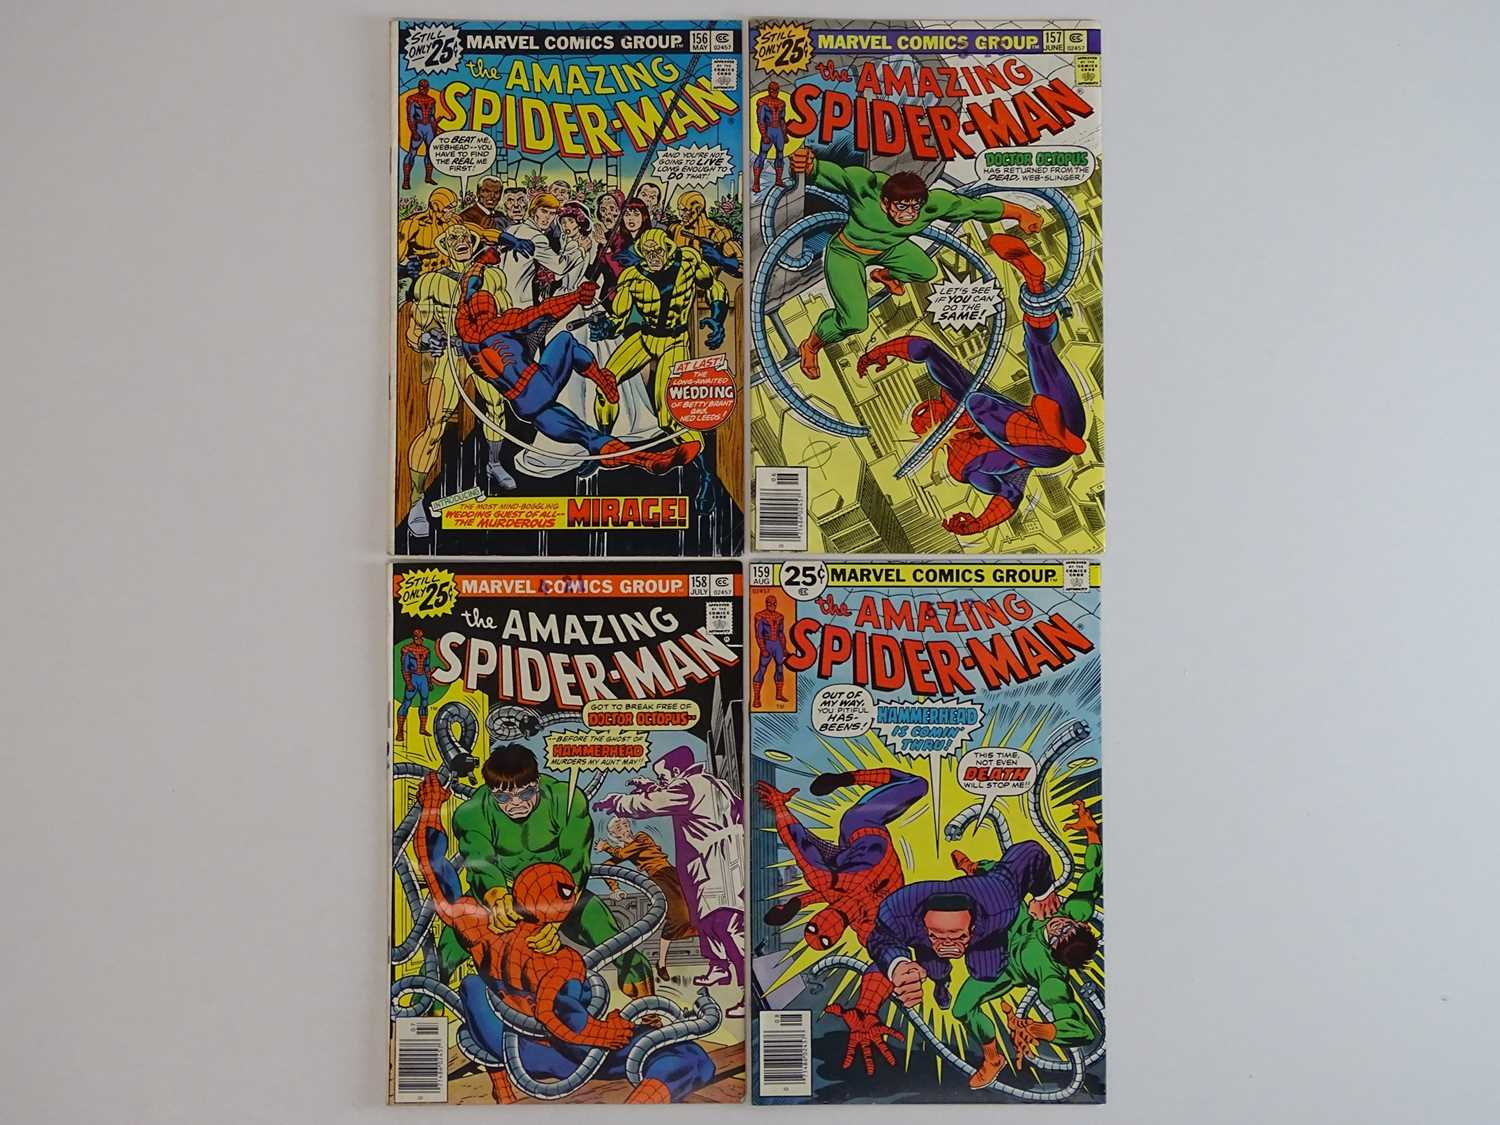 AMAZING SPIDER-MAN #156, 157, 158, 159 - (4 in Lot) - (1976 - MARVEL) - Includes First appearance of